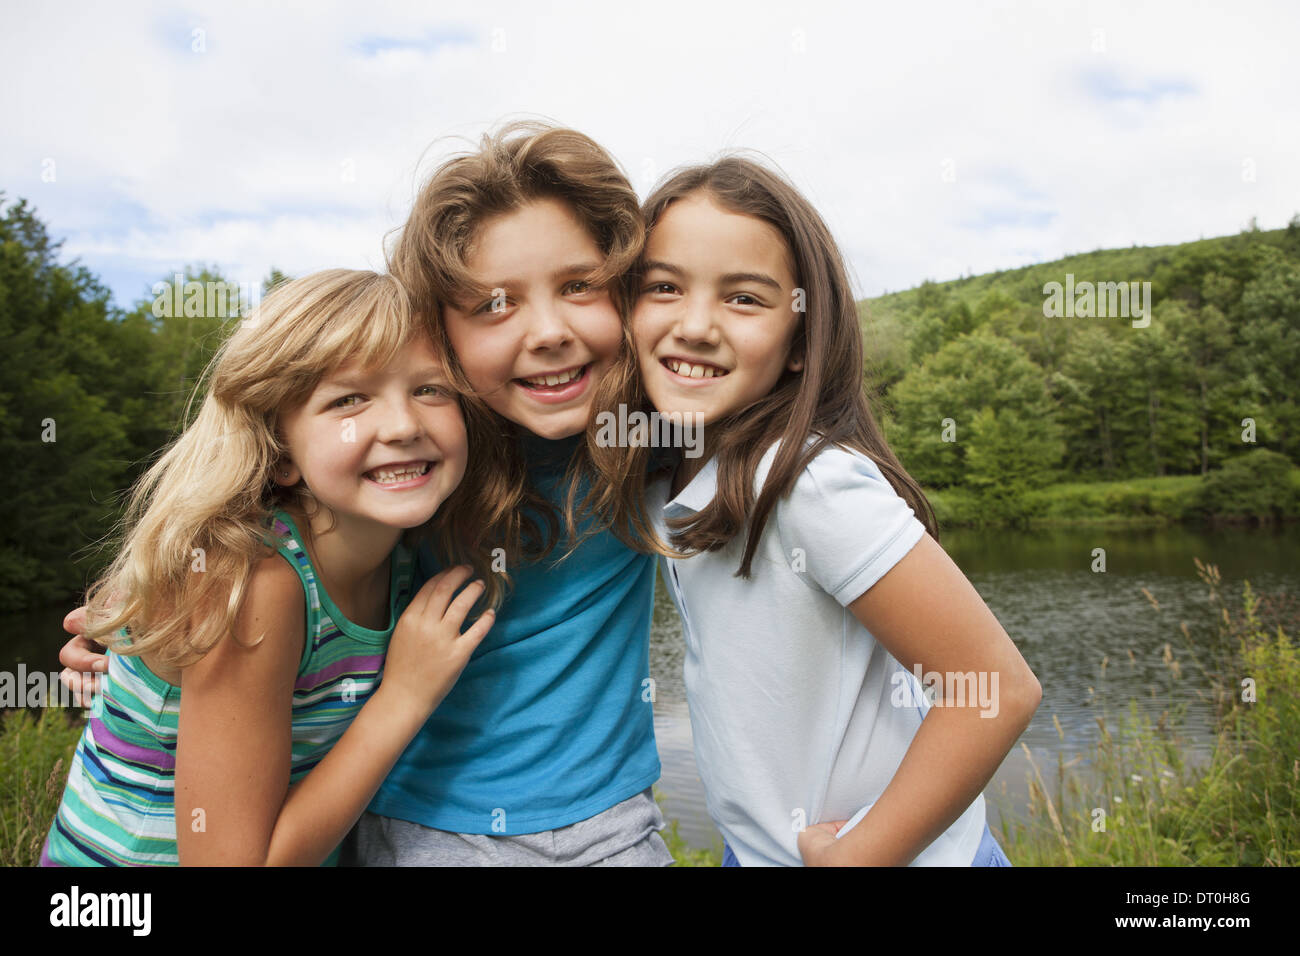 New York state USA Three young girls friends posing for photograph - Stock Image